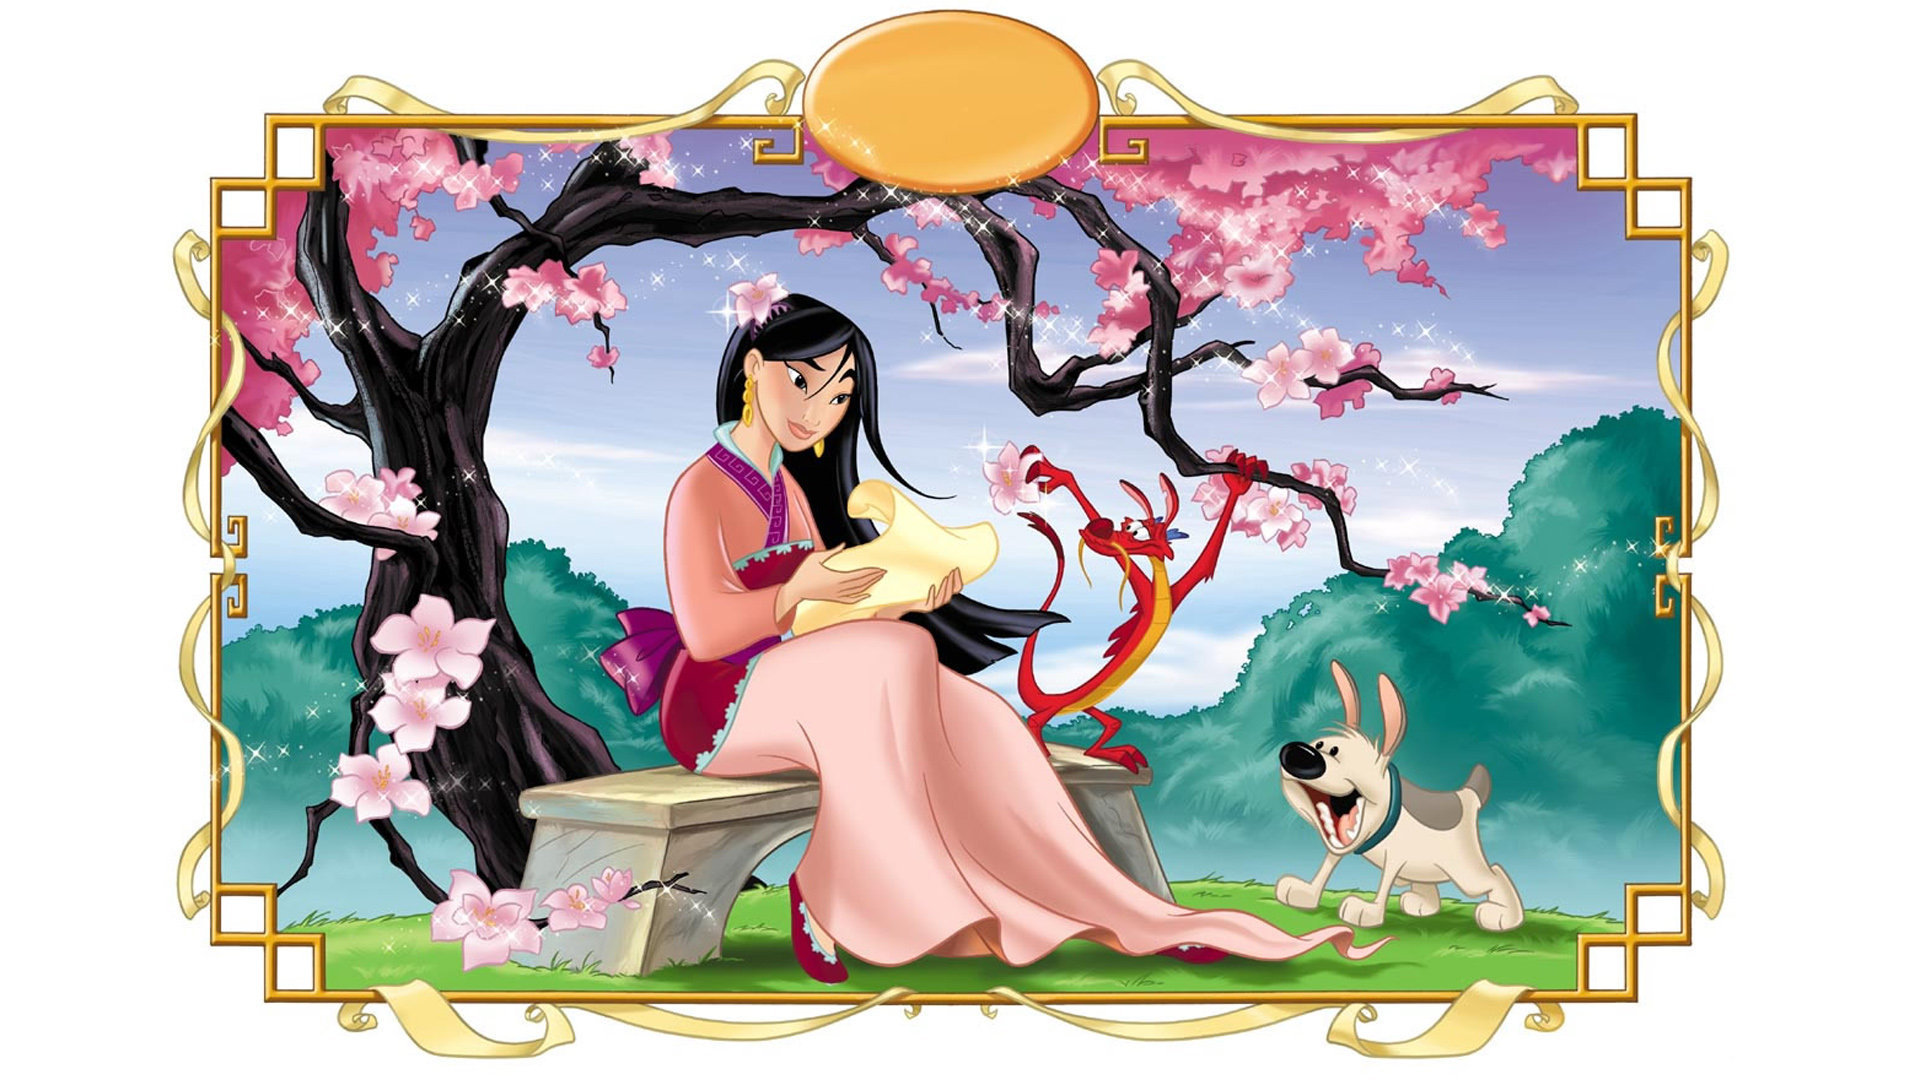 Mulan Images HD Wallpaper And Background Photos